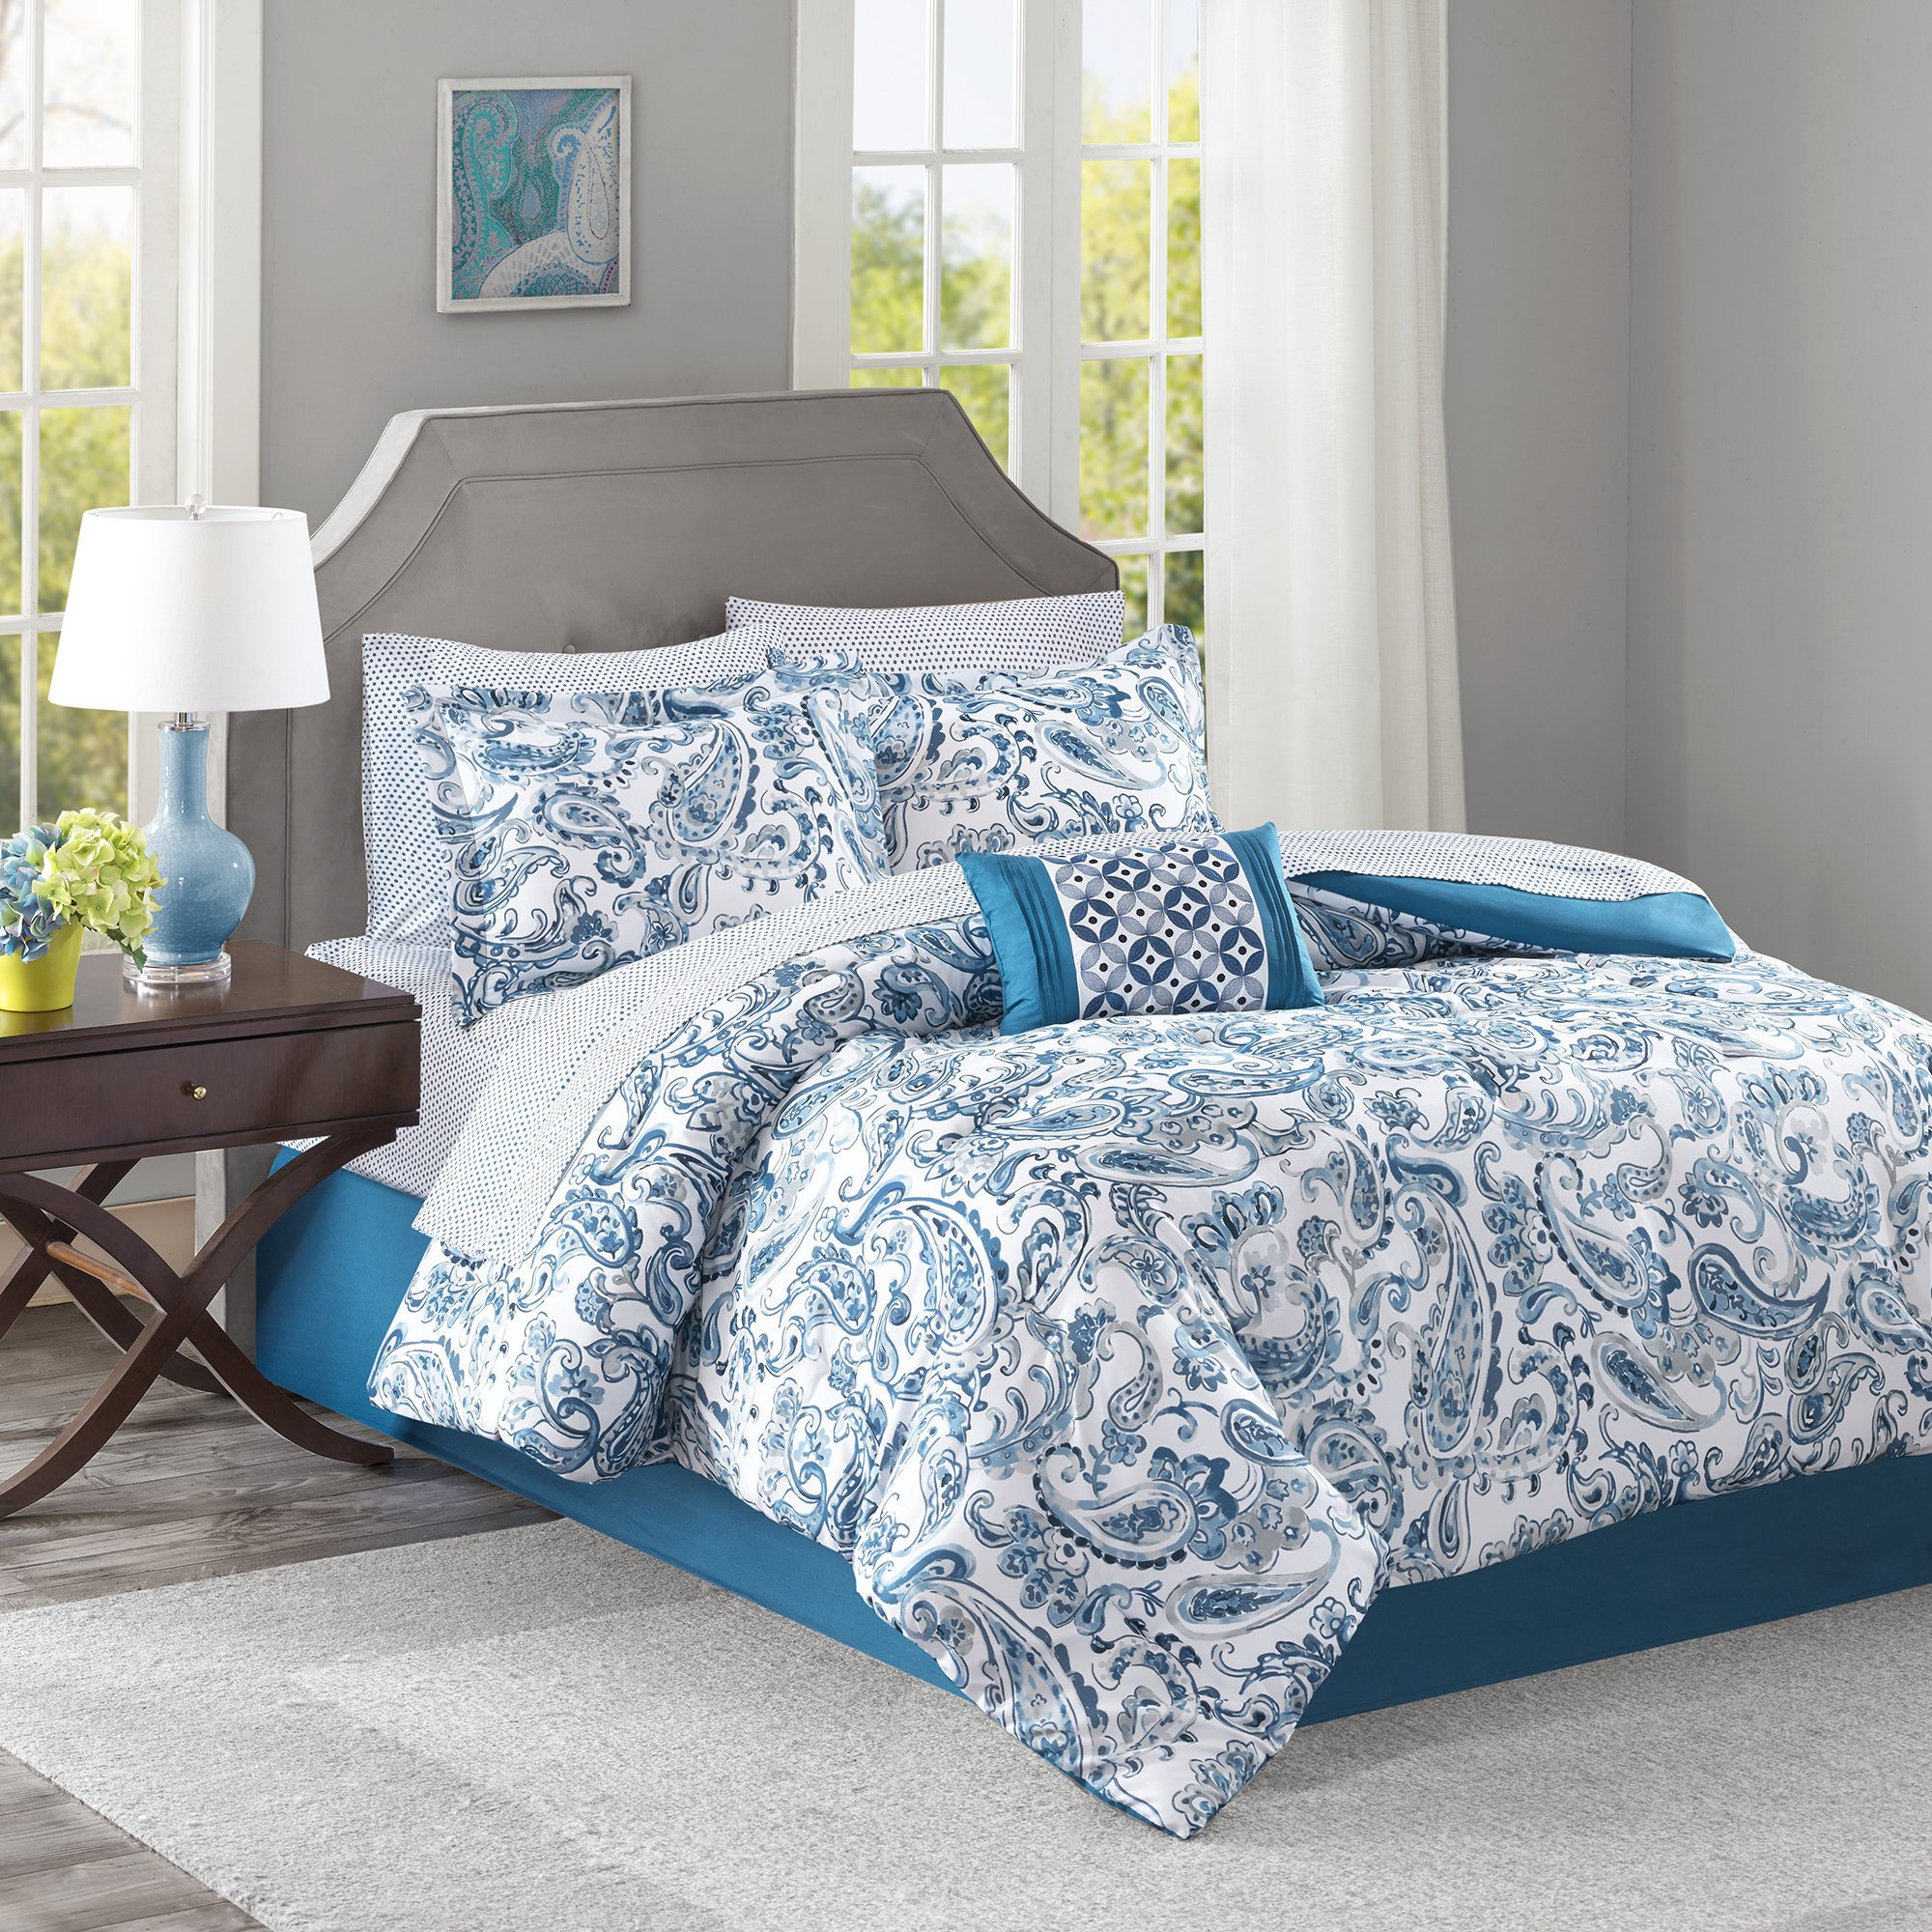 9 Piece Girls Teal Blue Green Paisley Pattern Comforter Cal King Set, Elegant All Over Scrollwork Motif Flowes Theme Bedding, Rich Bohemian Hippie Indie Style, French Country Design, Vibrant Colors